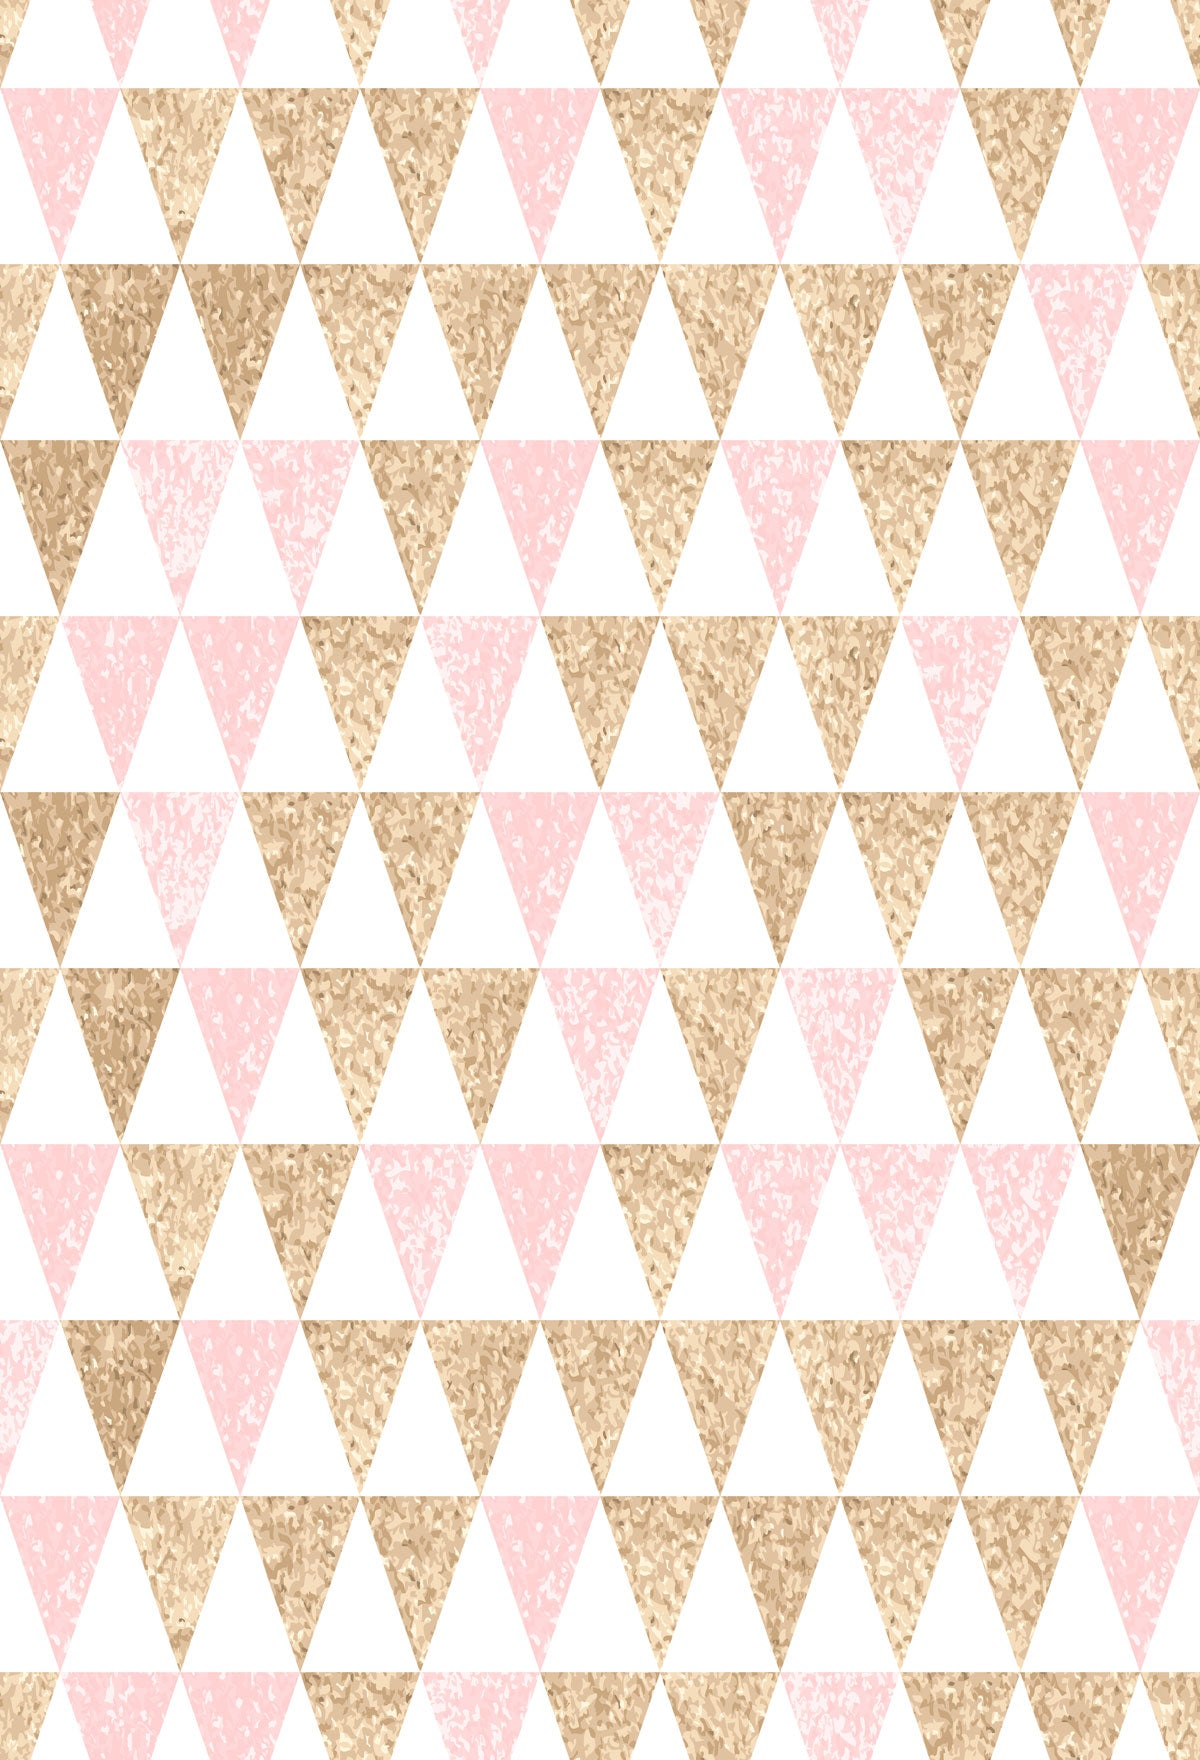 Load image into Gallery viewer, Kate White,Golden and Pink Triangles Backdrop for Photography